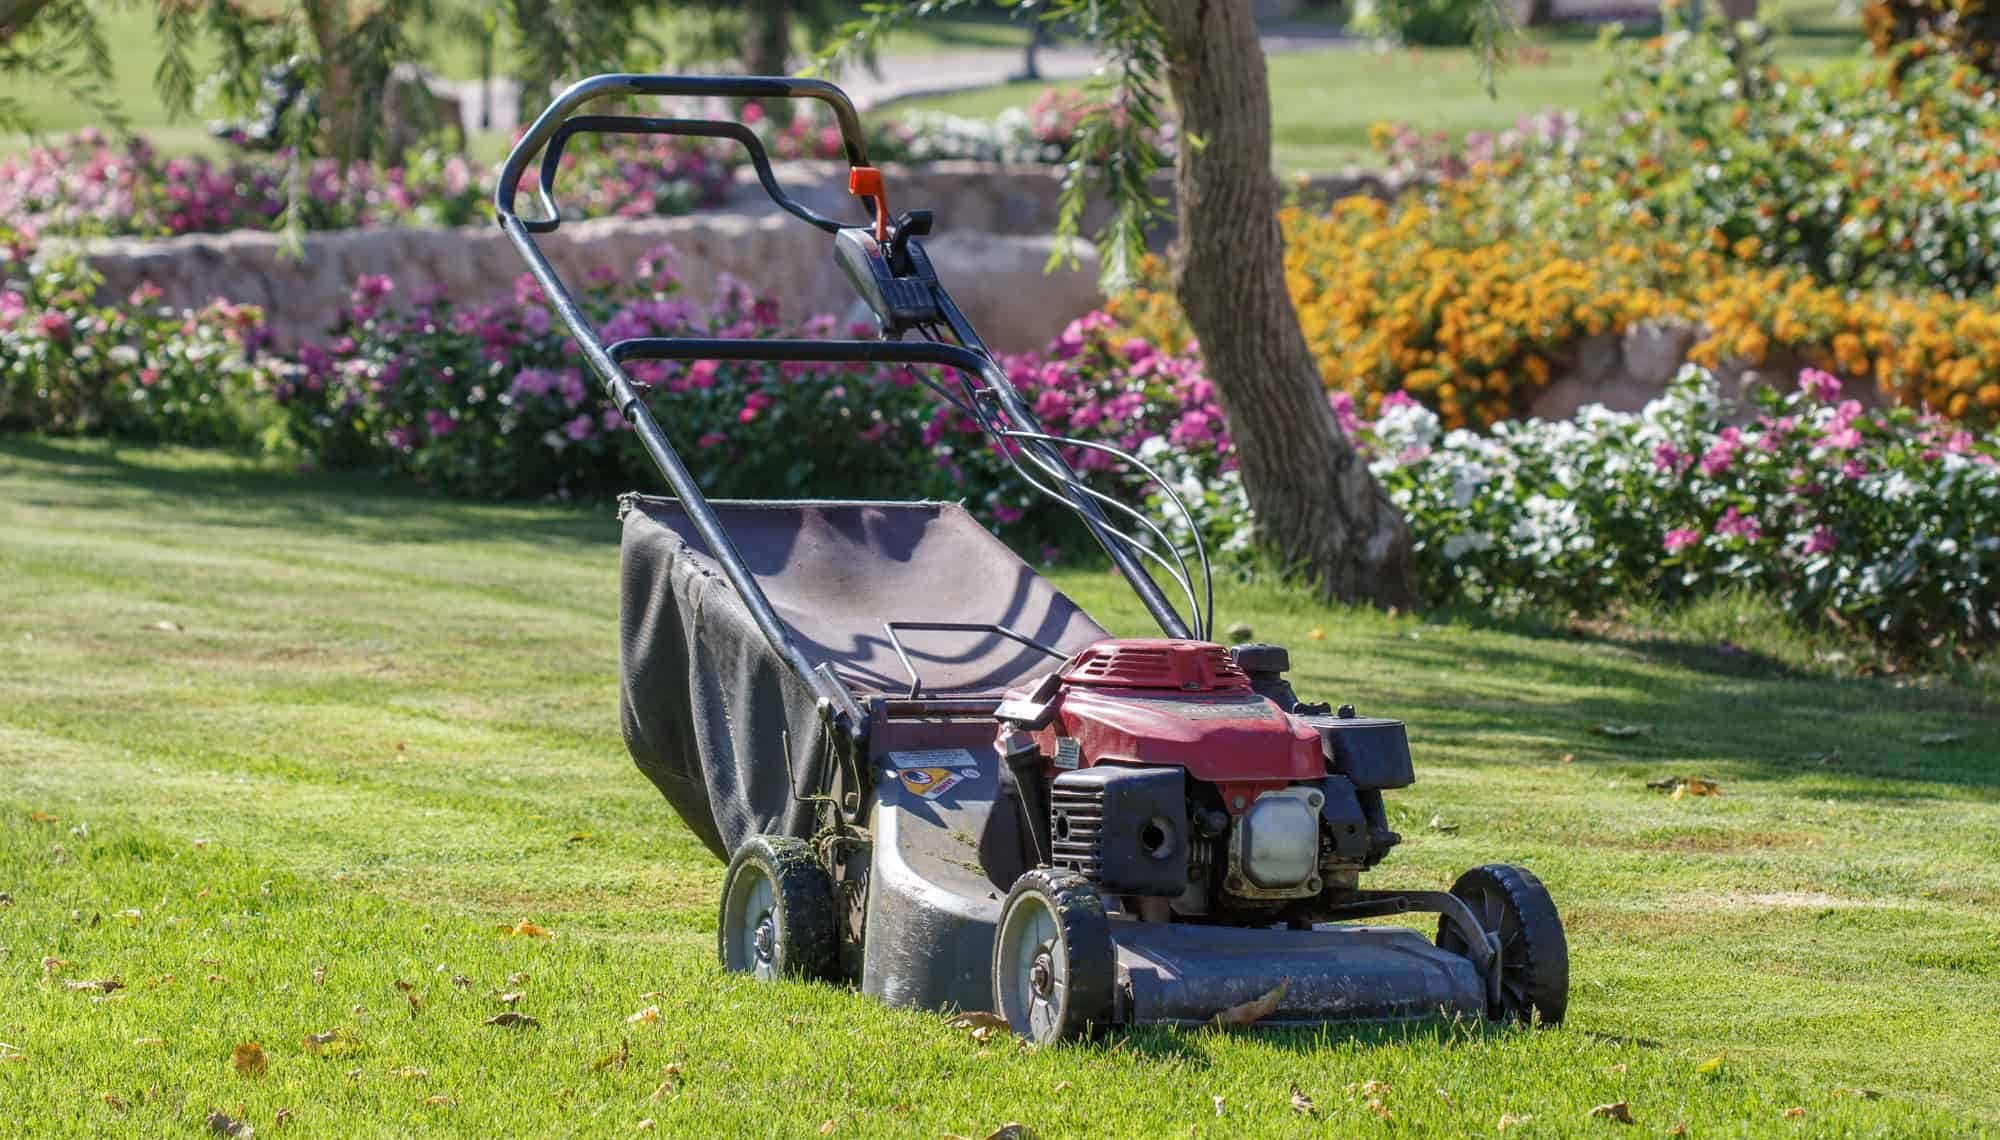 How Much Does A Lawn Mower Weigh